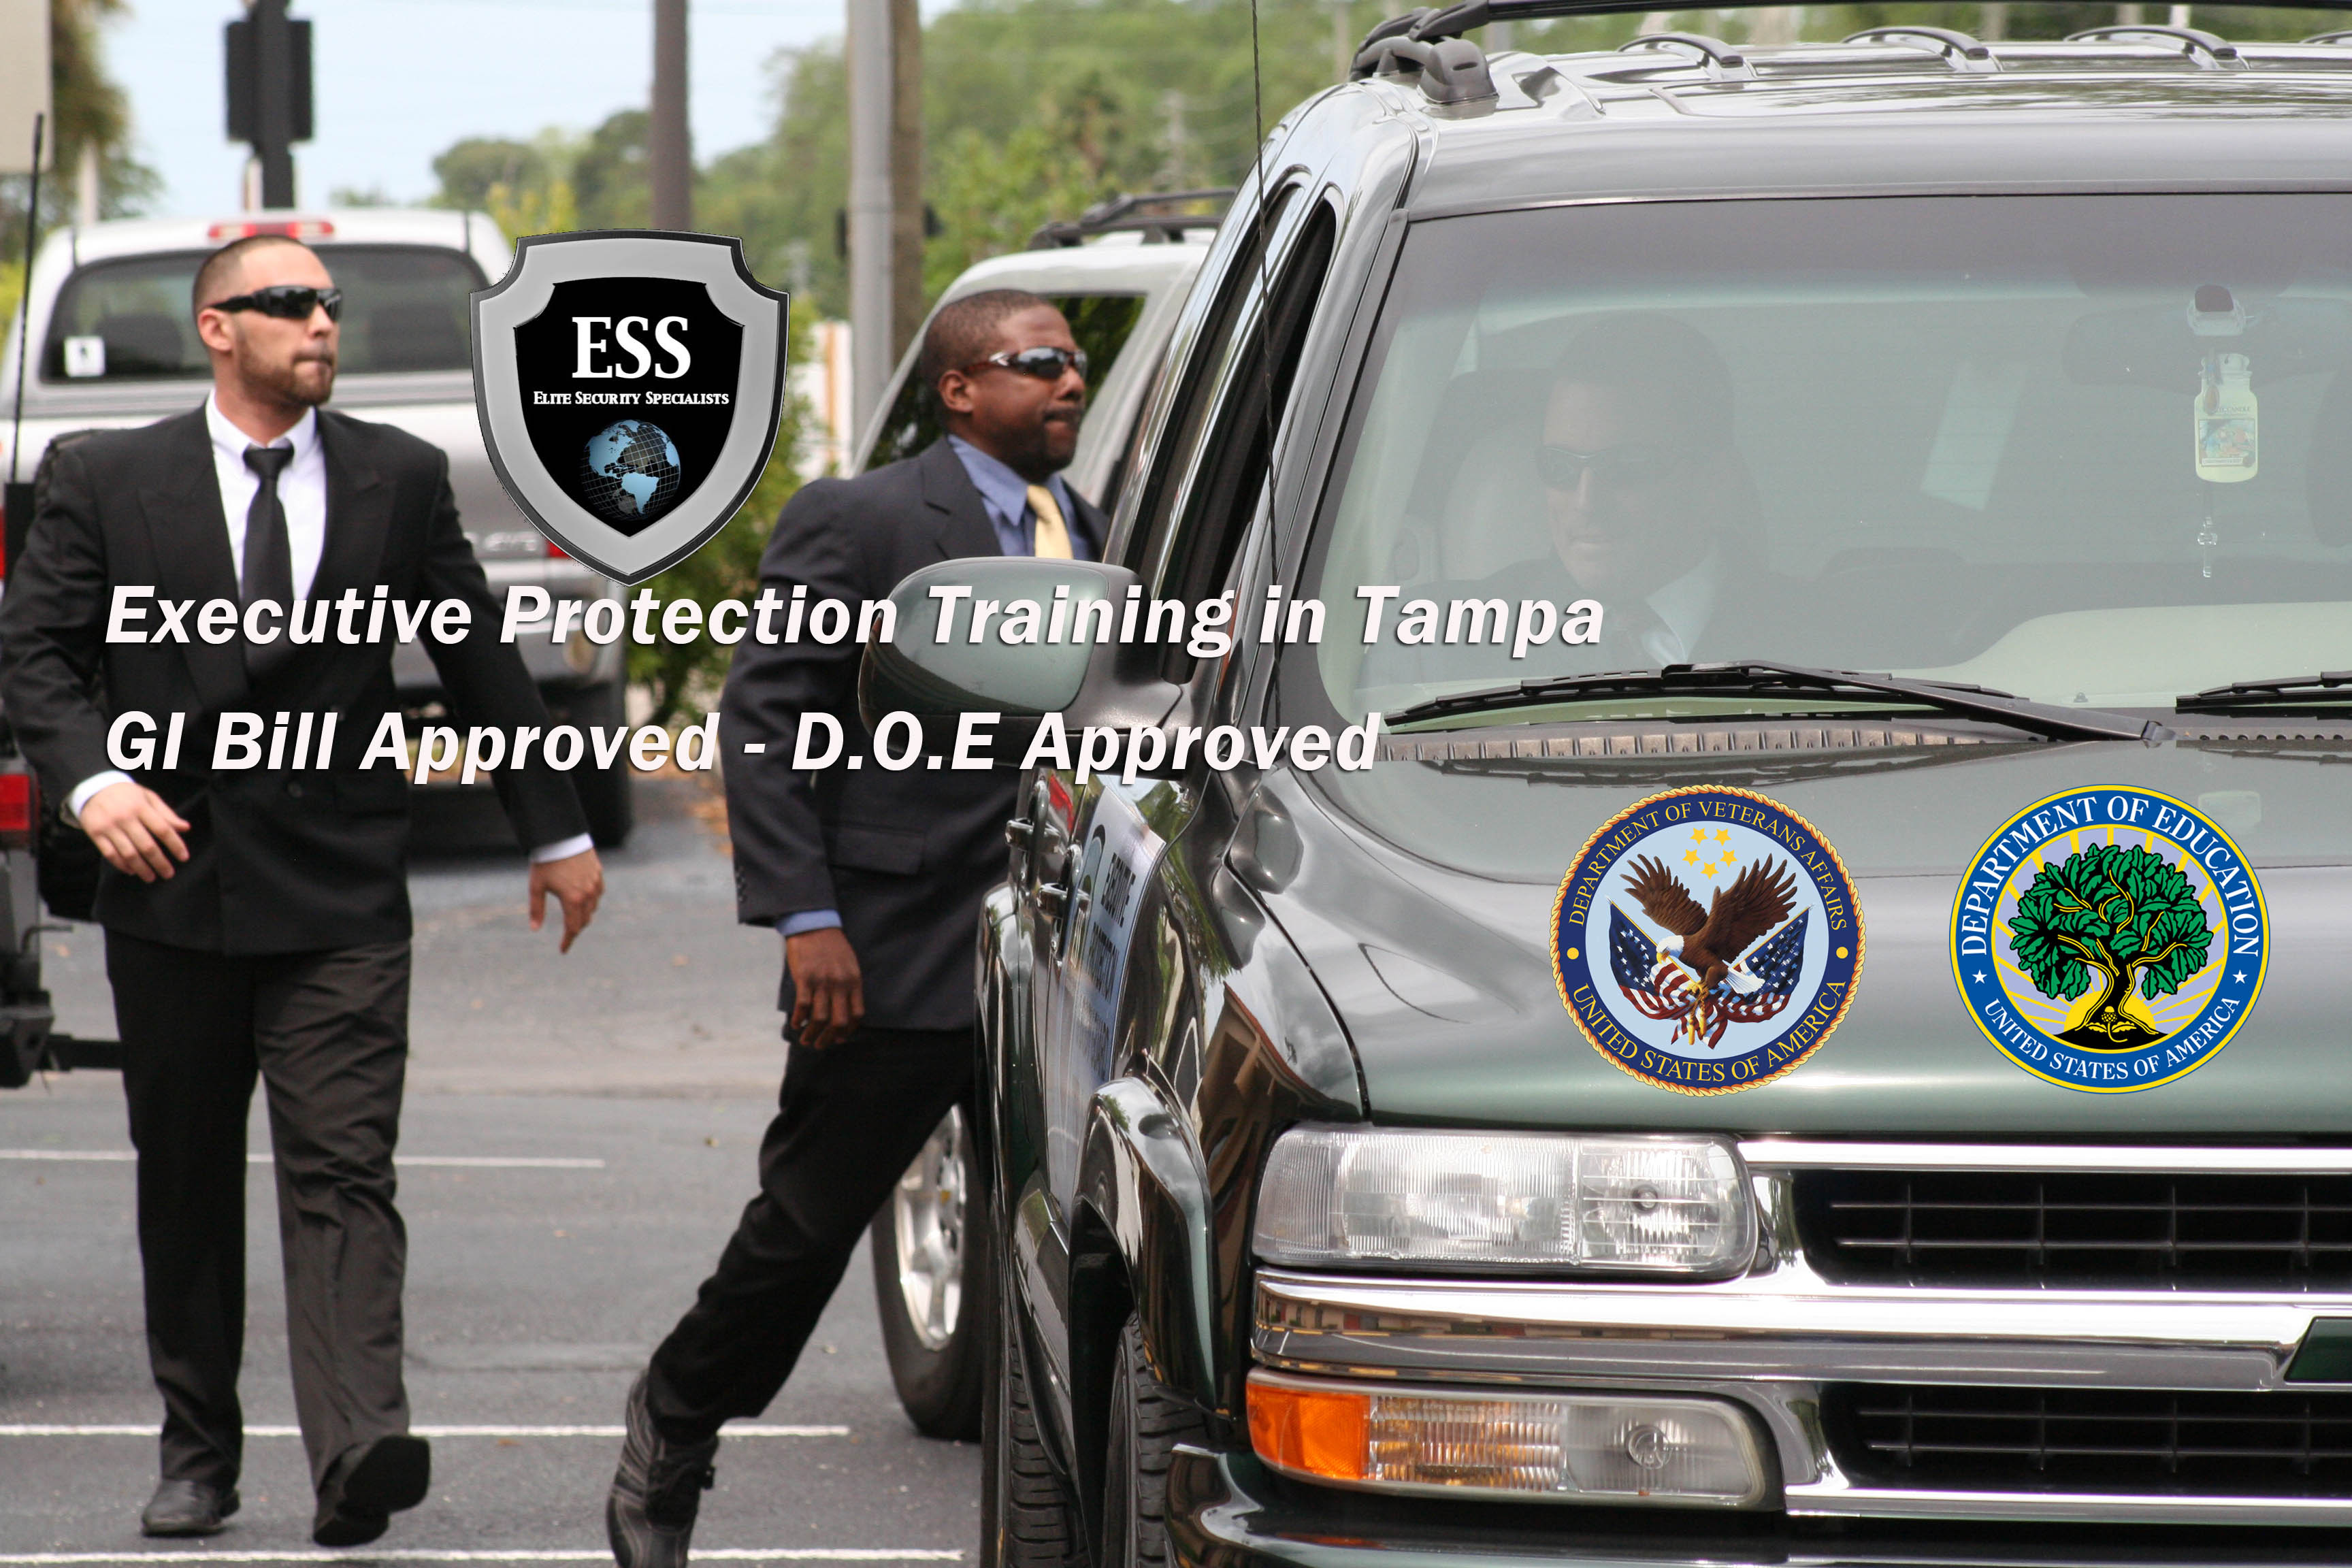 GI Bill Approved Bodyguard Schools - Tampa